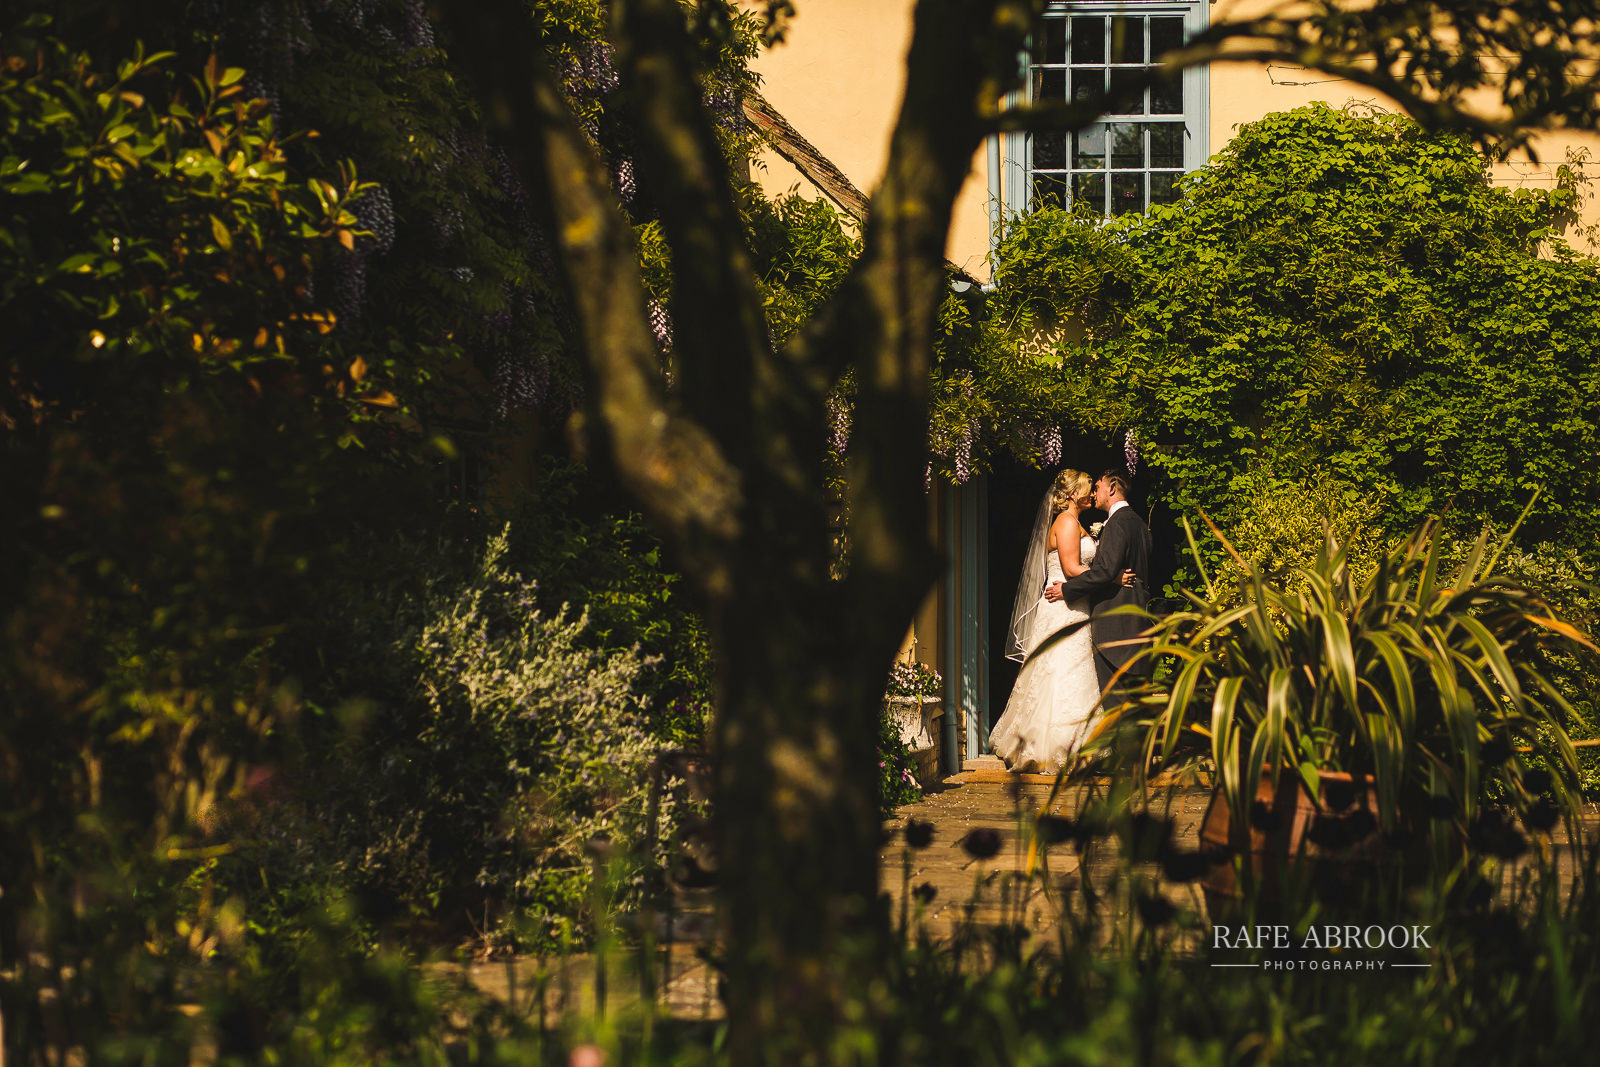 south farm wedding royston hertfordshire wedding photographer rafe abrook photography-1614.jpg